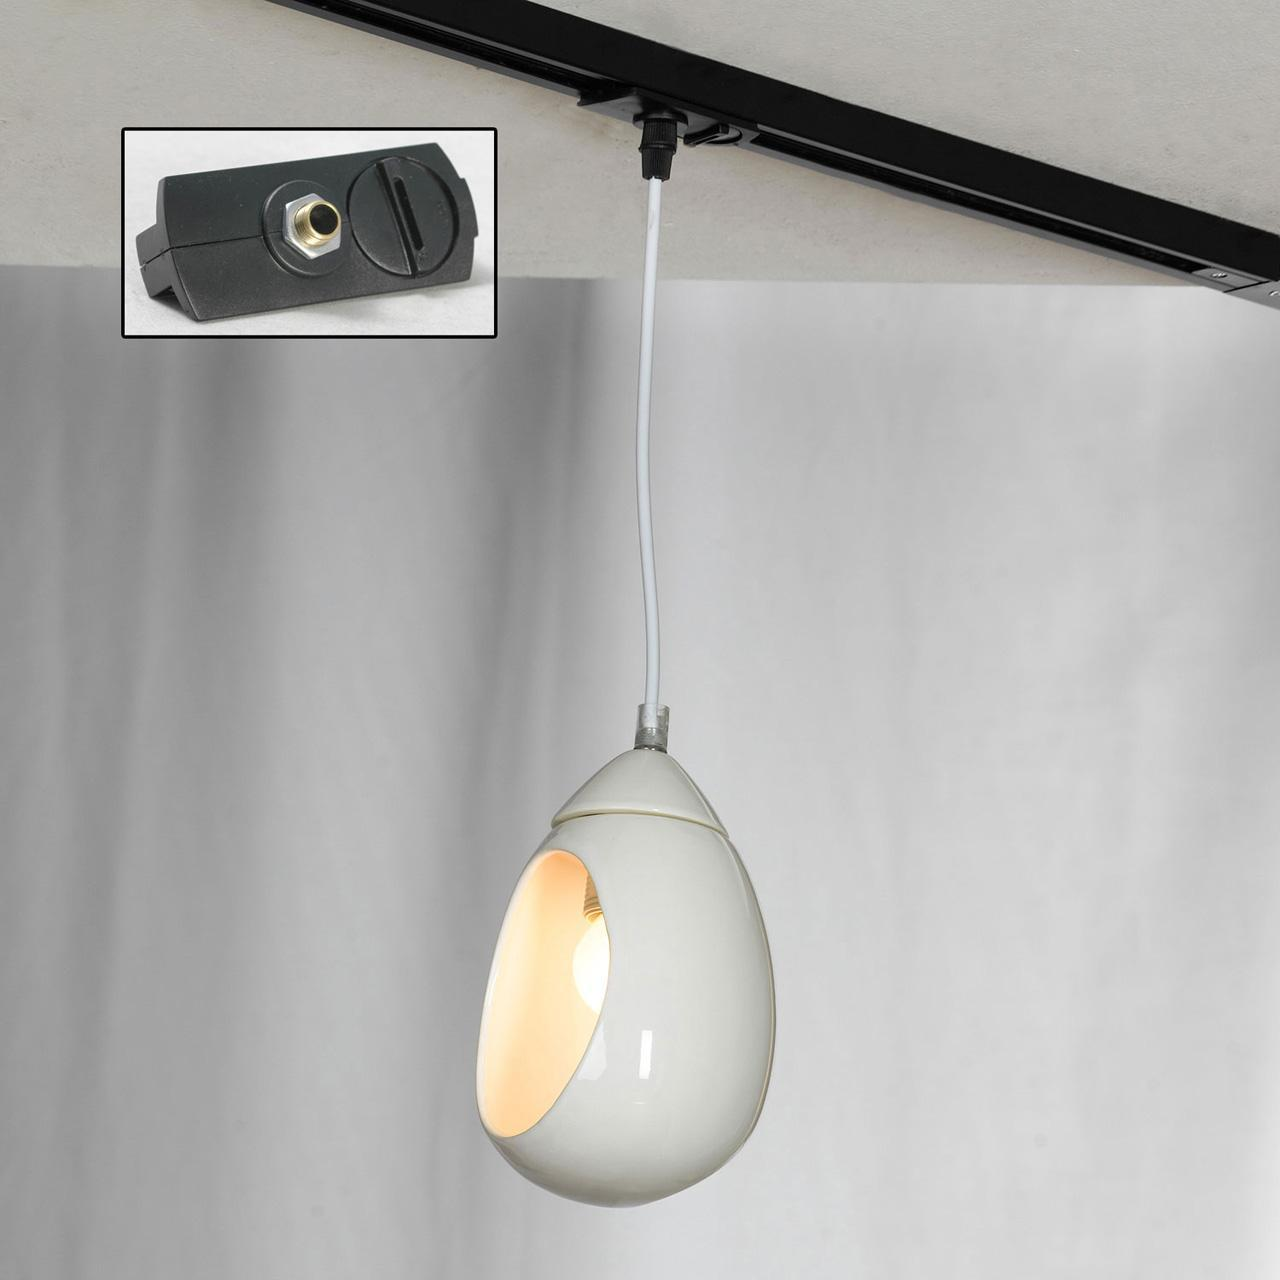 Трековый светильник однофазный Lussole LOFT Track Lights LSP-8034-TAB edison bulb loft style vintage pendant industrial light lamp with 3 lights for dining room